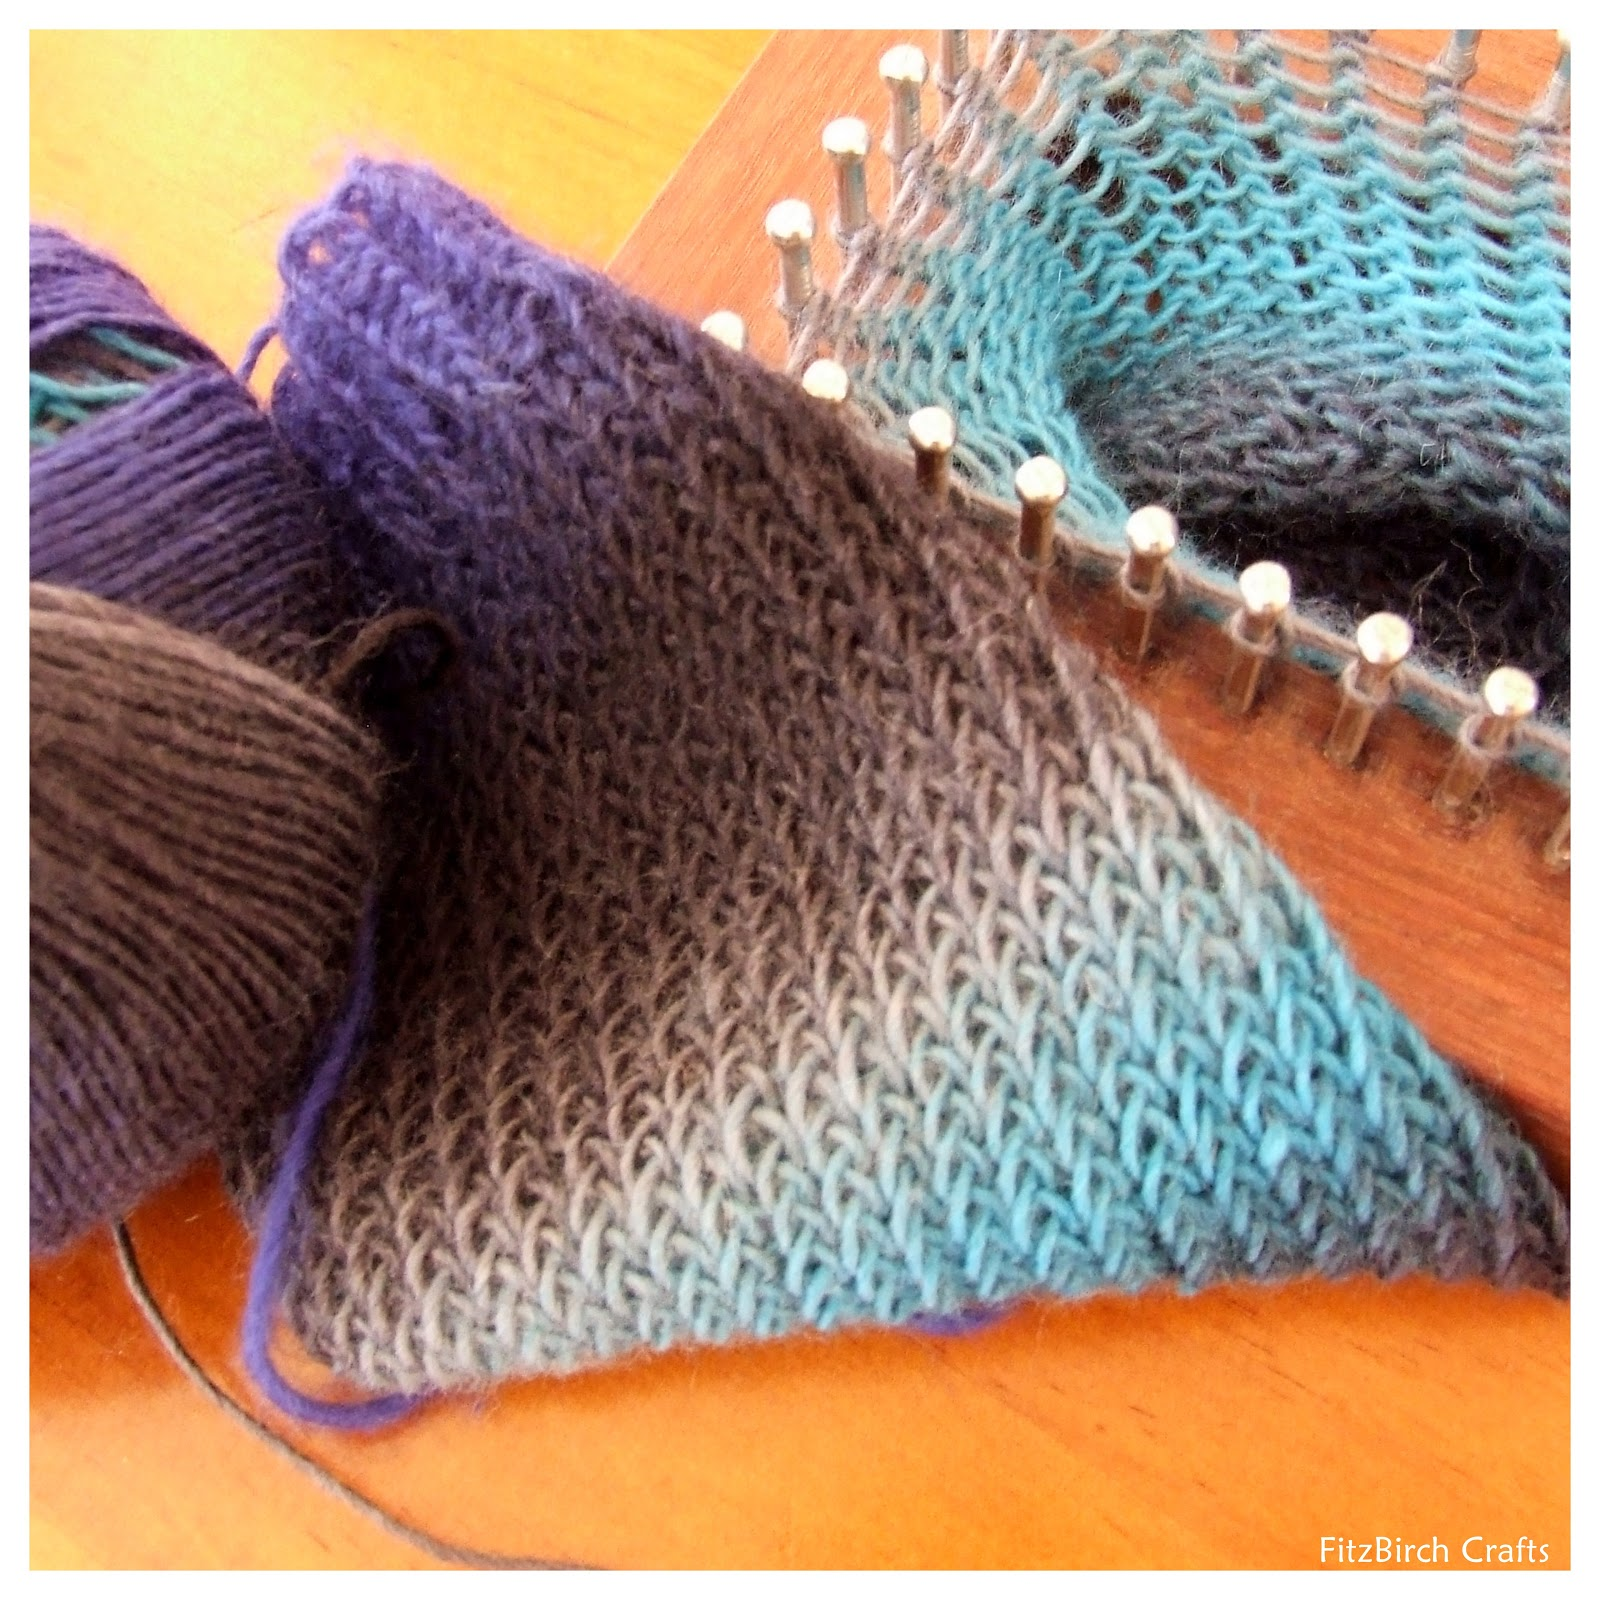 Patterns For Knitting Looms : FitzBirch Crafts: Loom Knit Socks